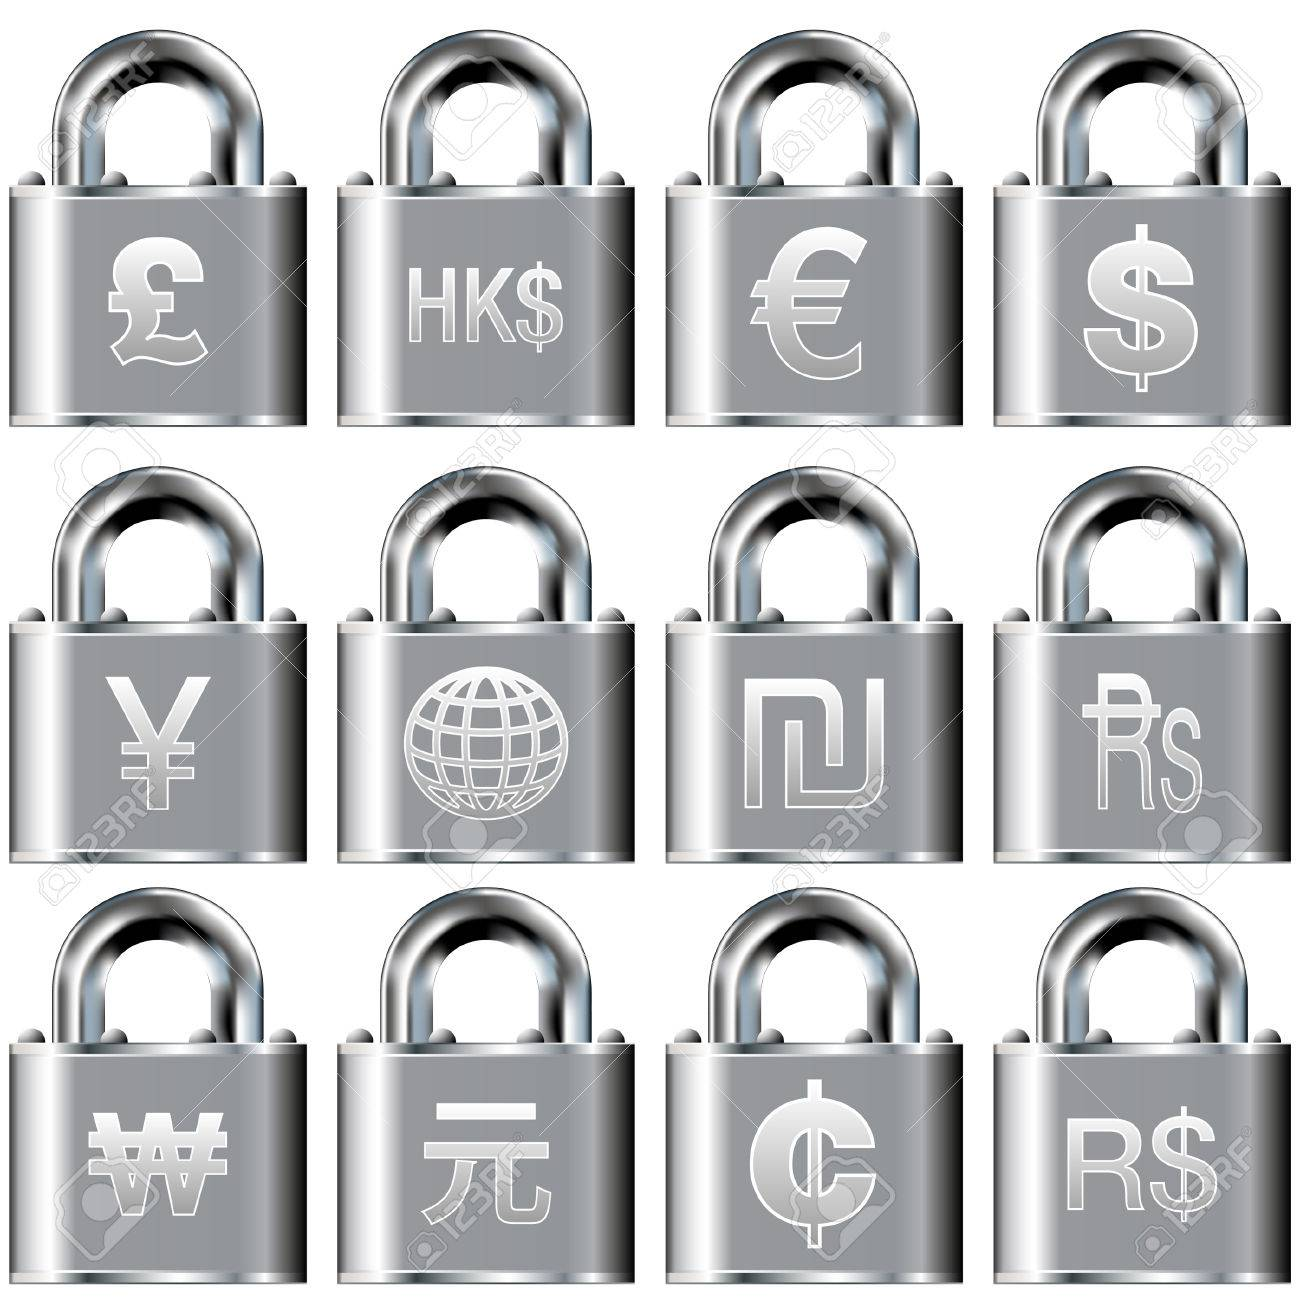 International currency symbol icons on security padlock buttons Stock Vector - 4695260